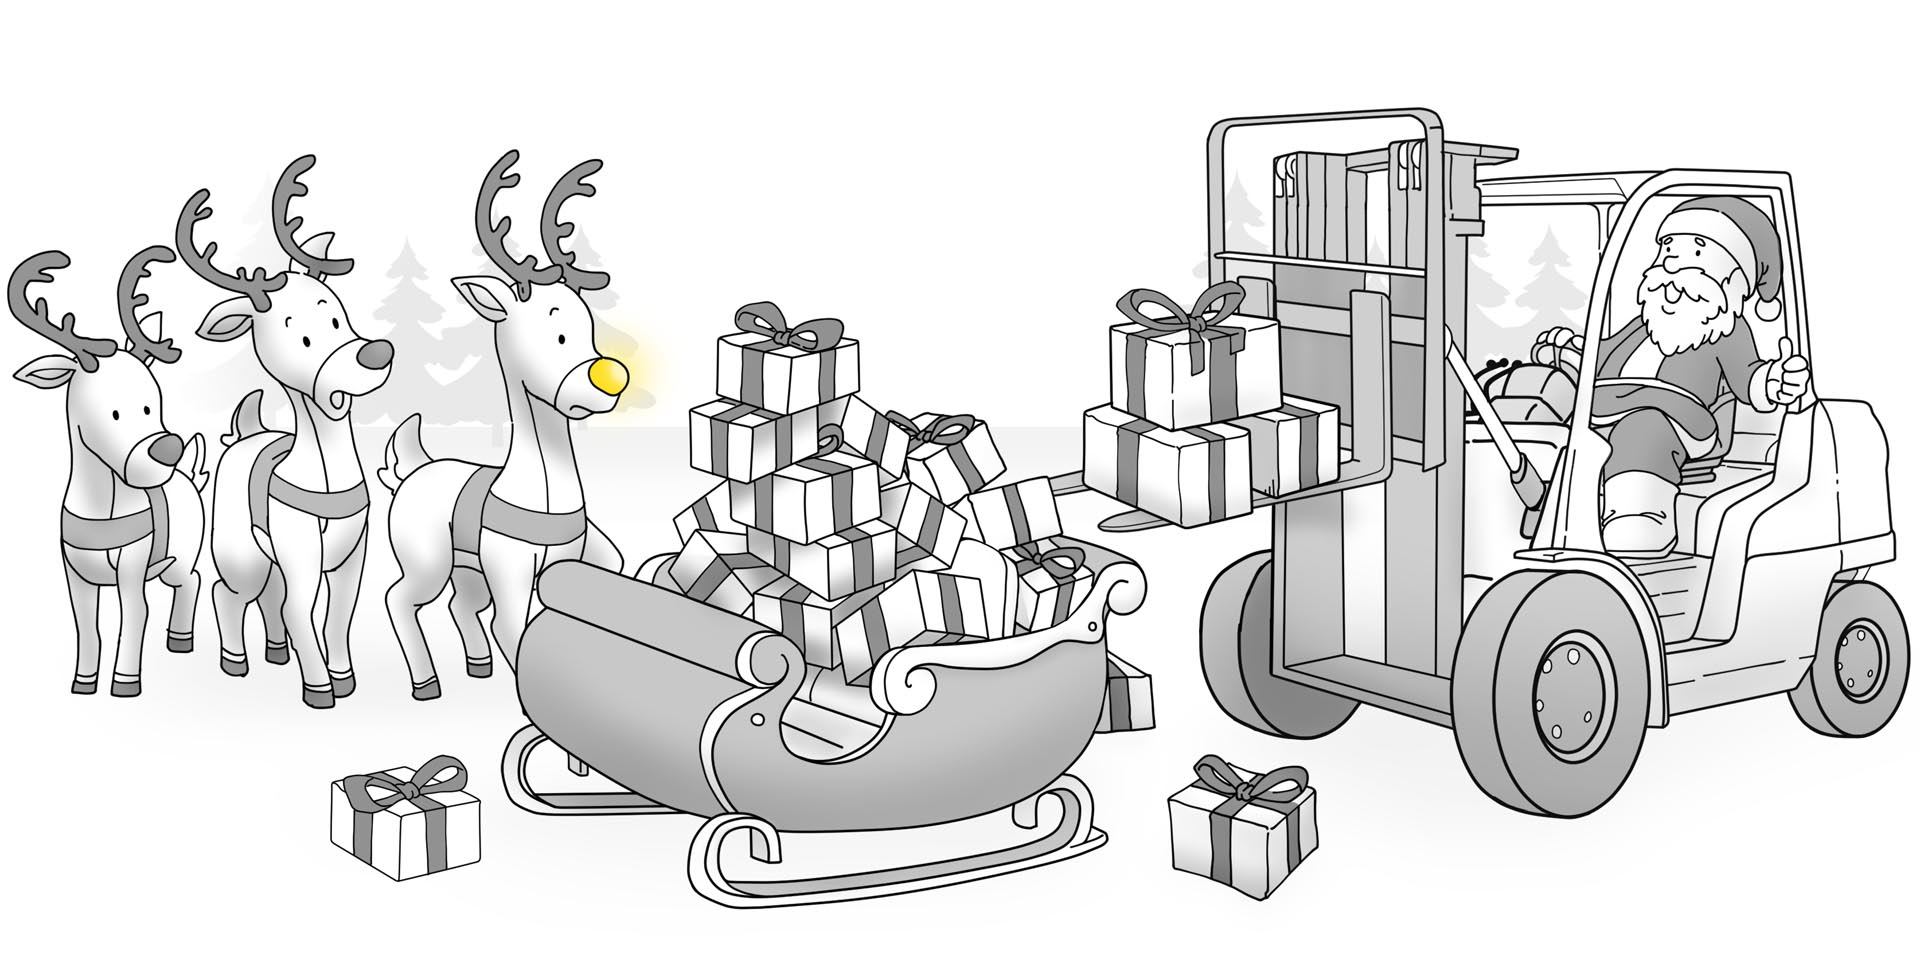 Santa Claus using a forklift, dumping gifts into a sleigh while reindeer watch.